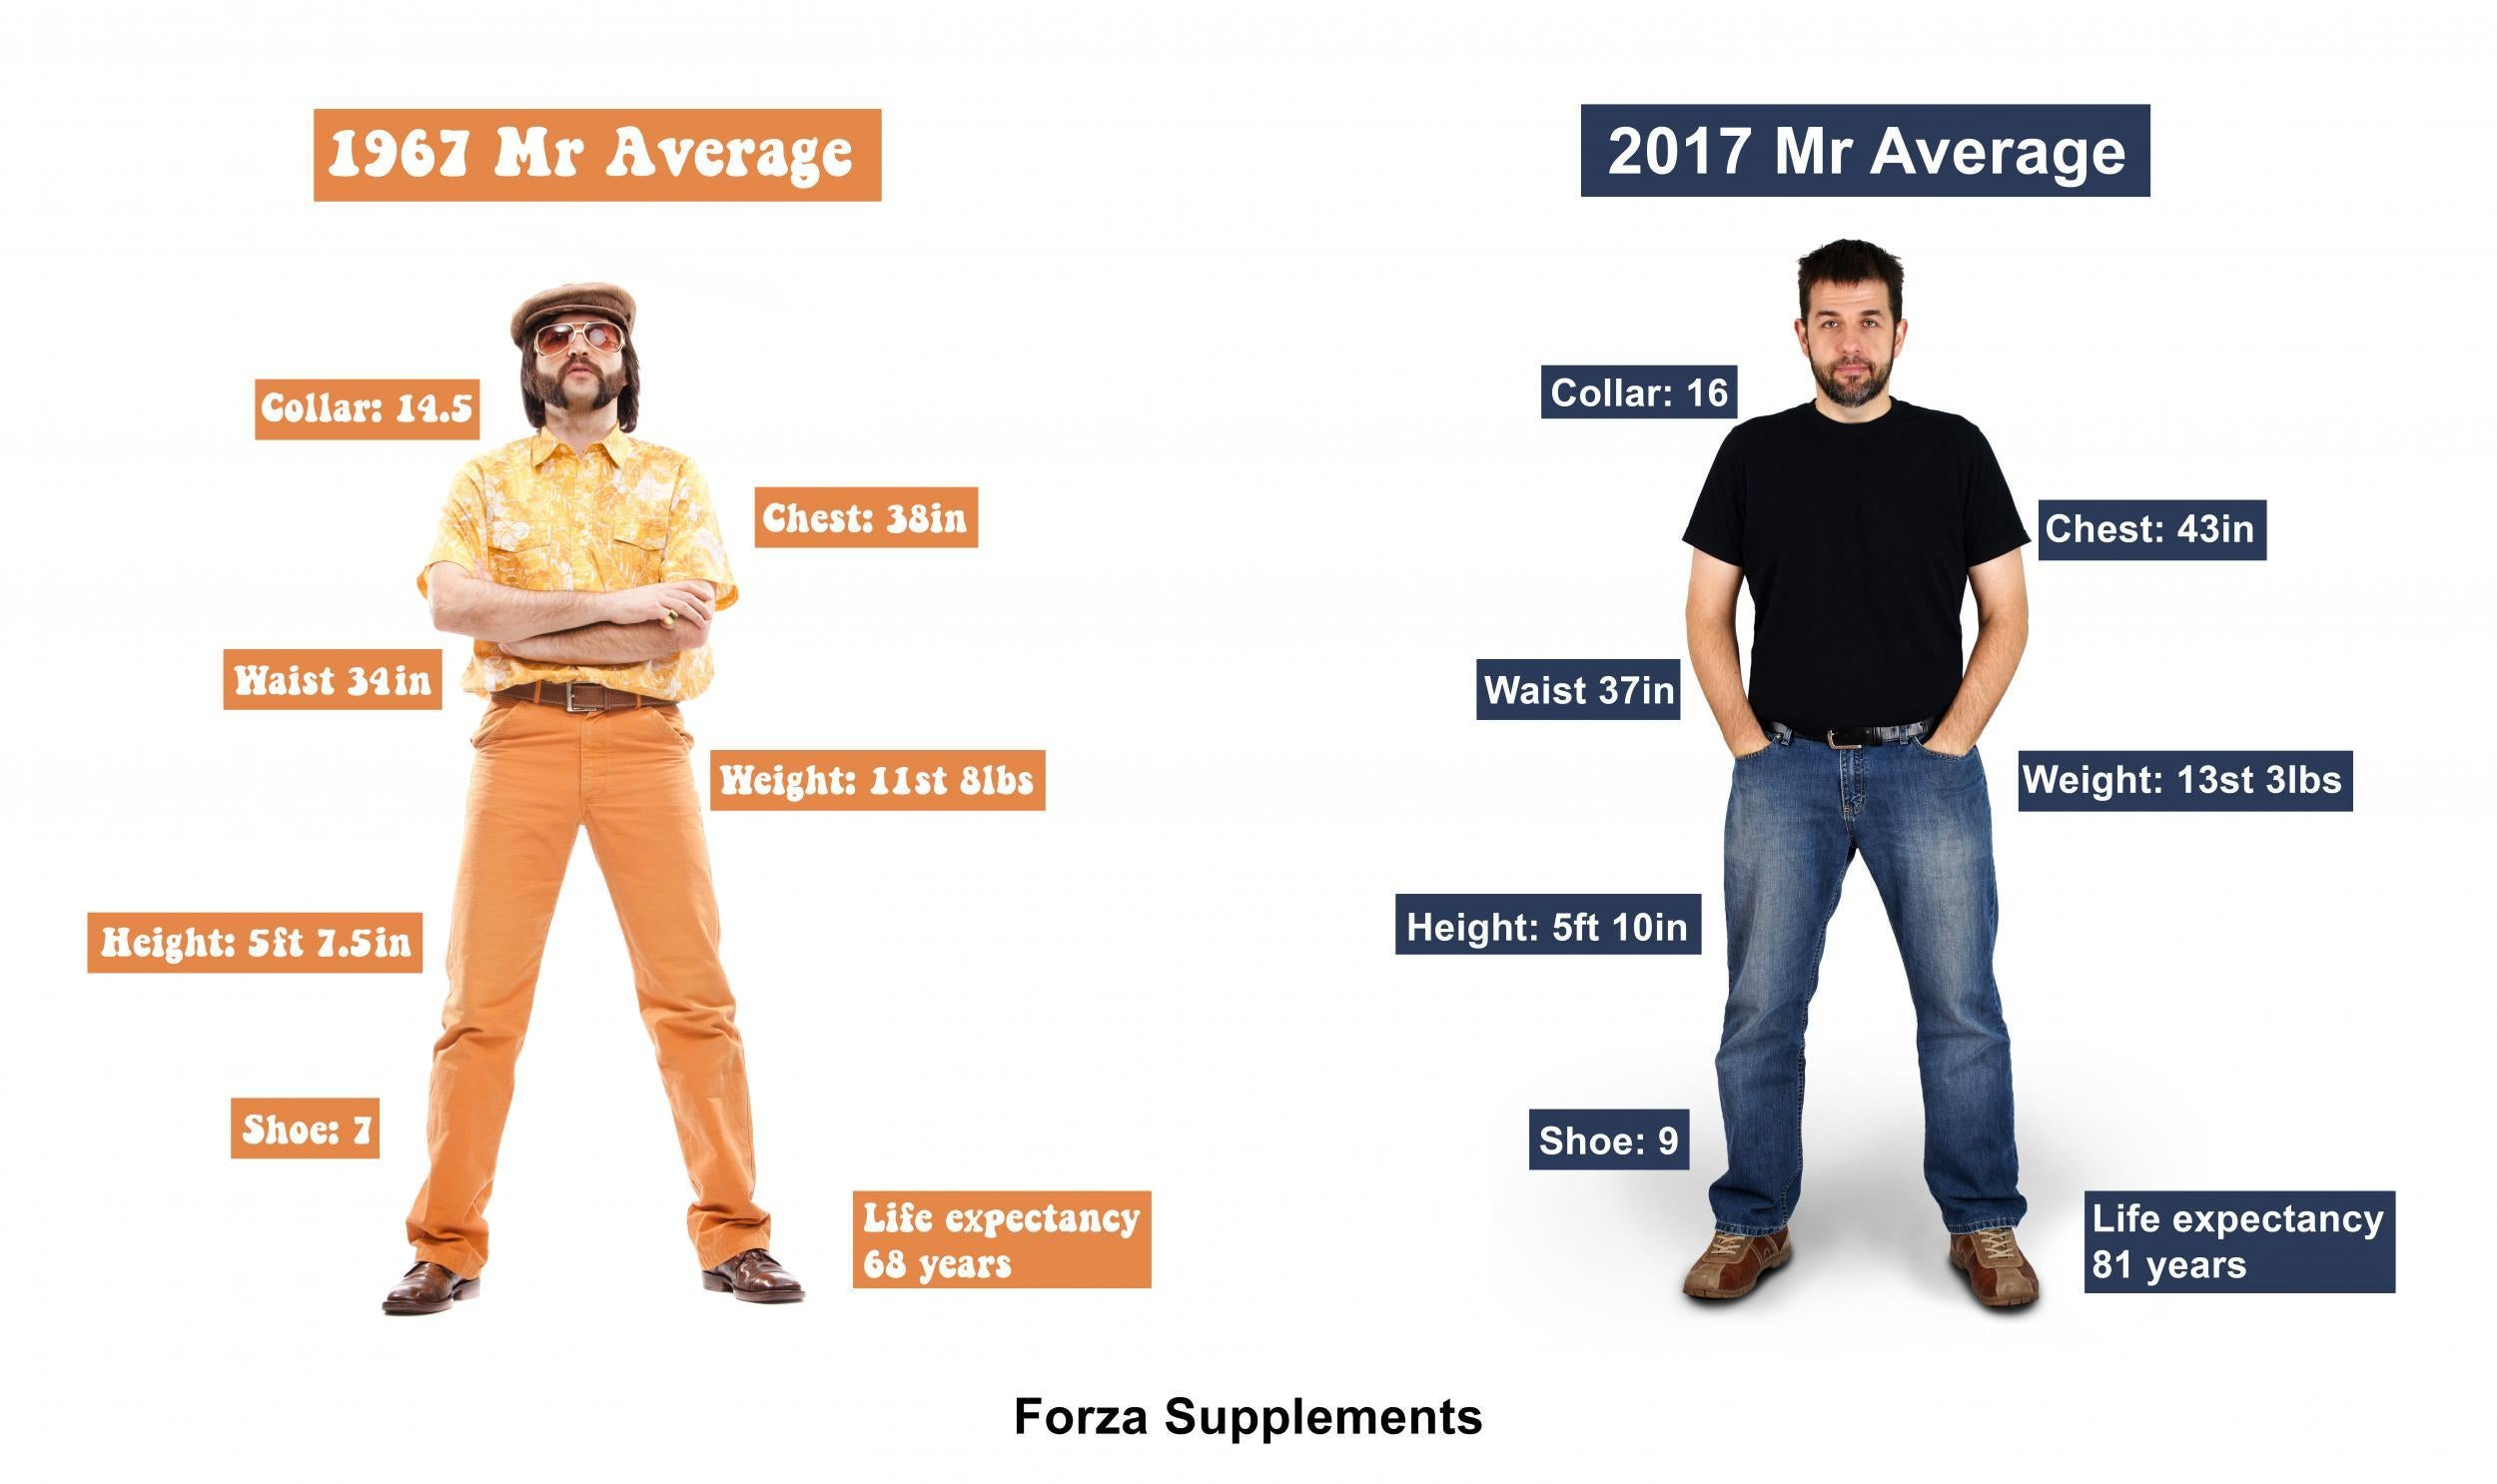 What should be the average height of a man